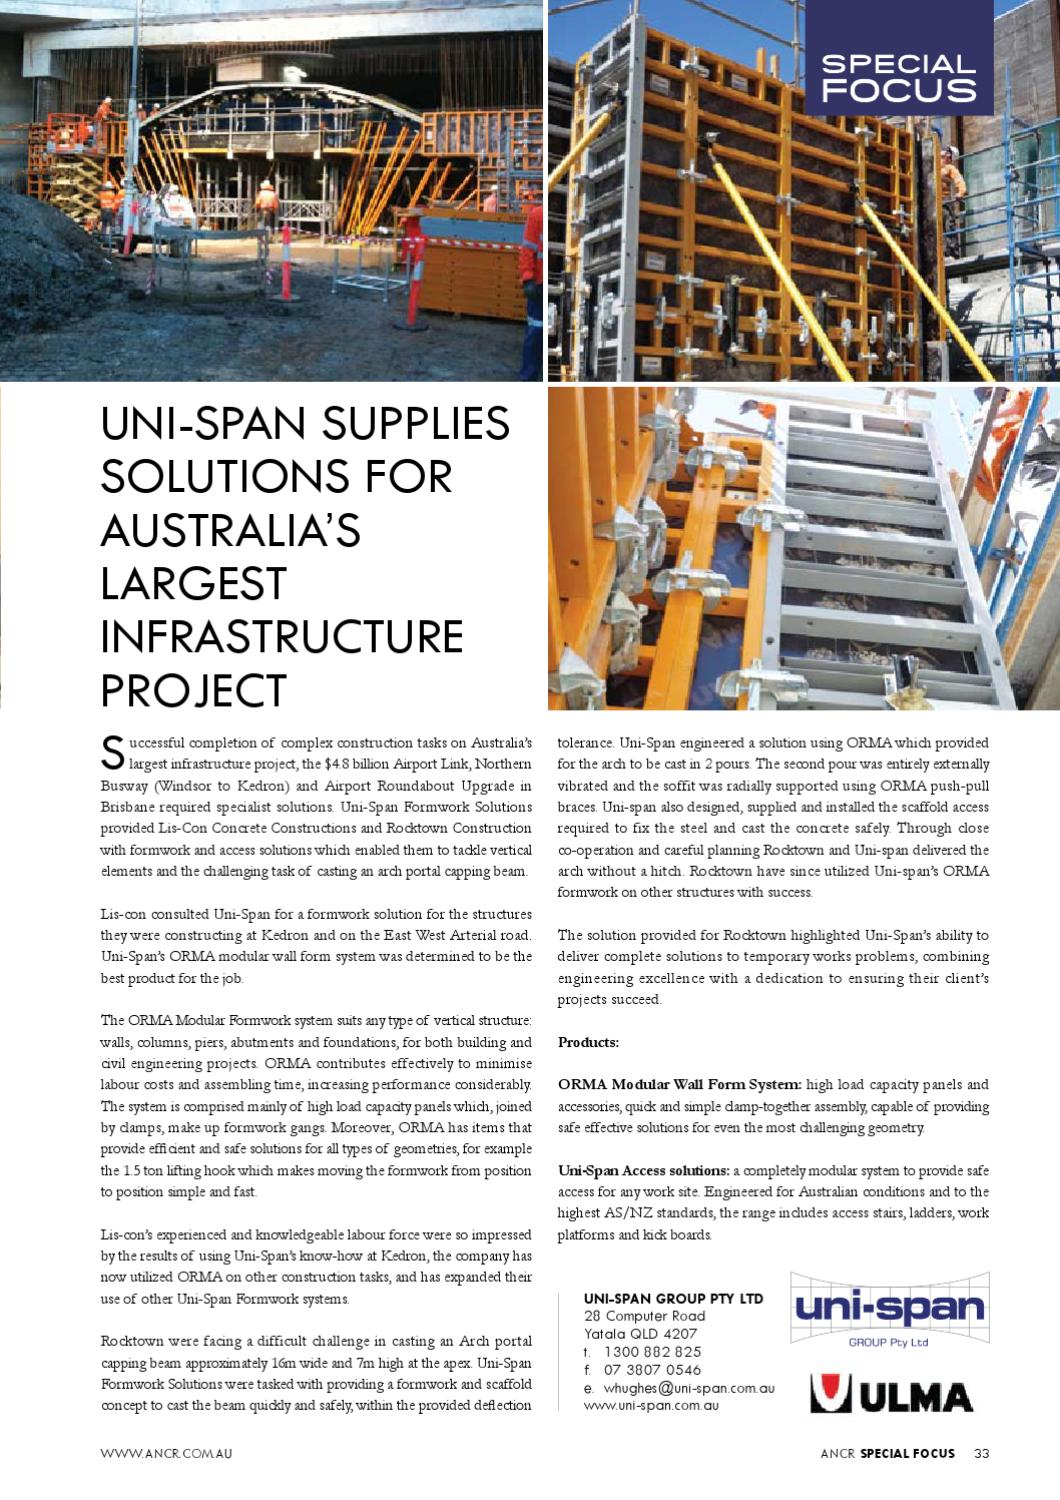 The Australian National Construction Review by Trade Media